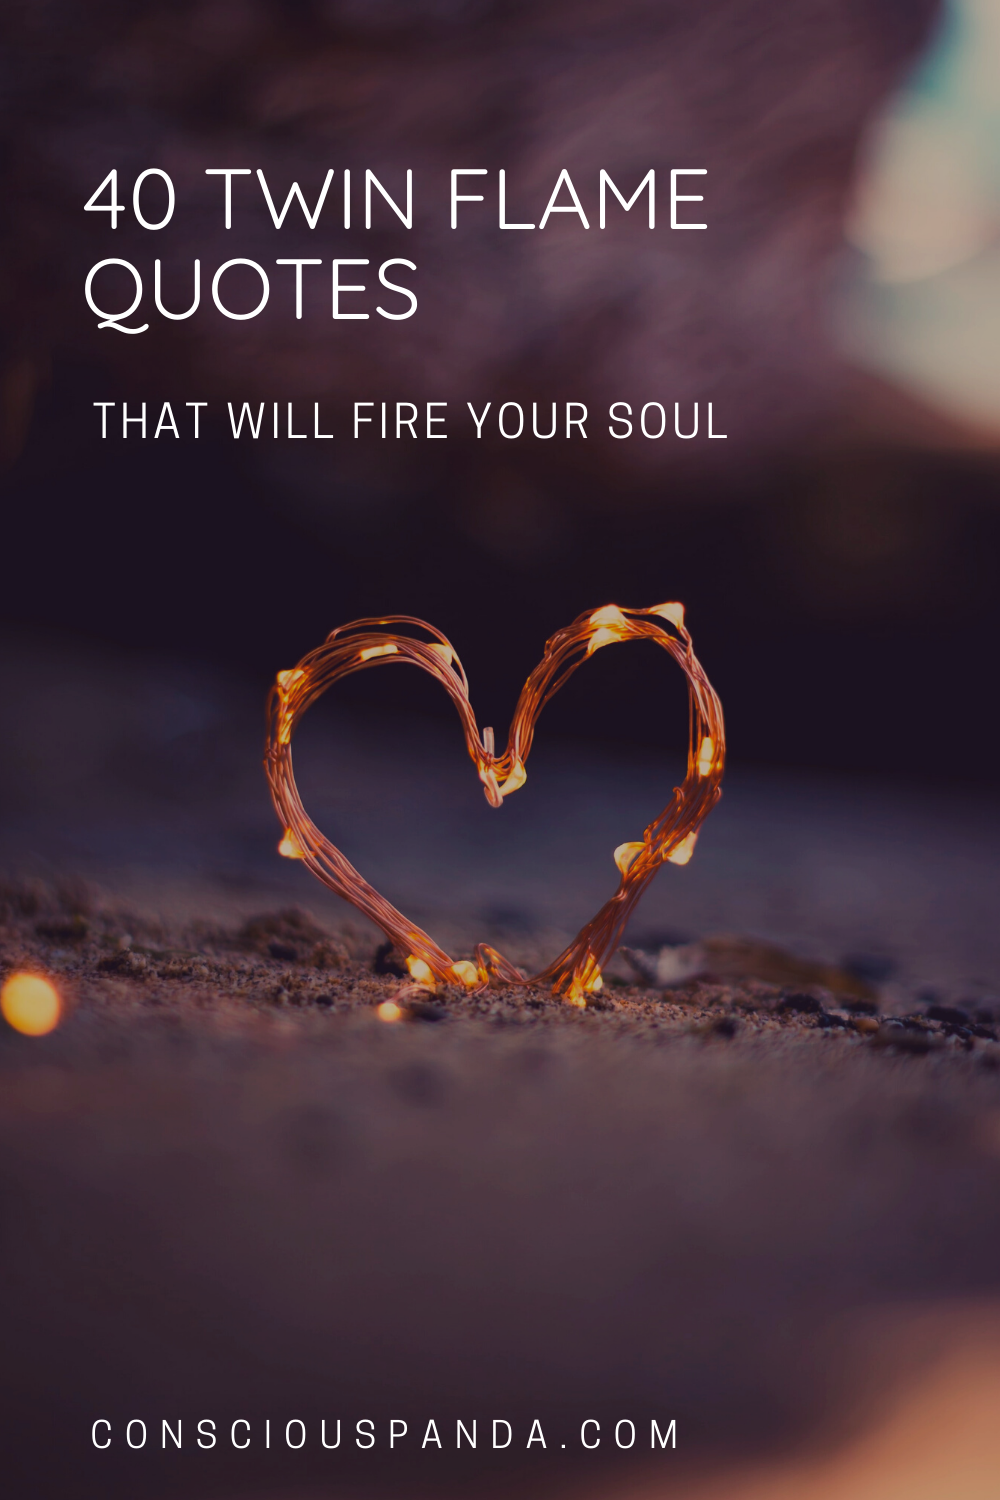 40 Twin Flame Quotes That Will Fire Your Soul